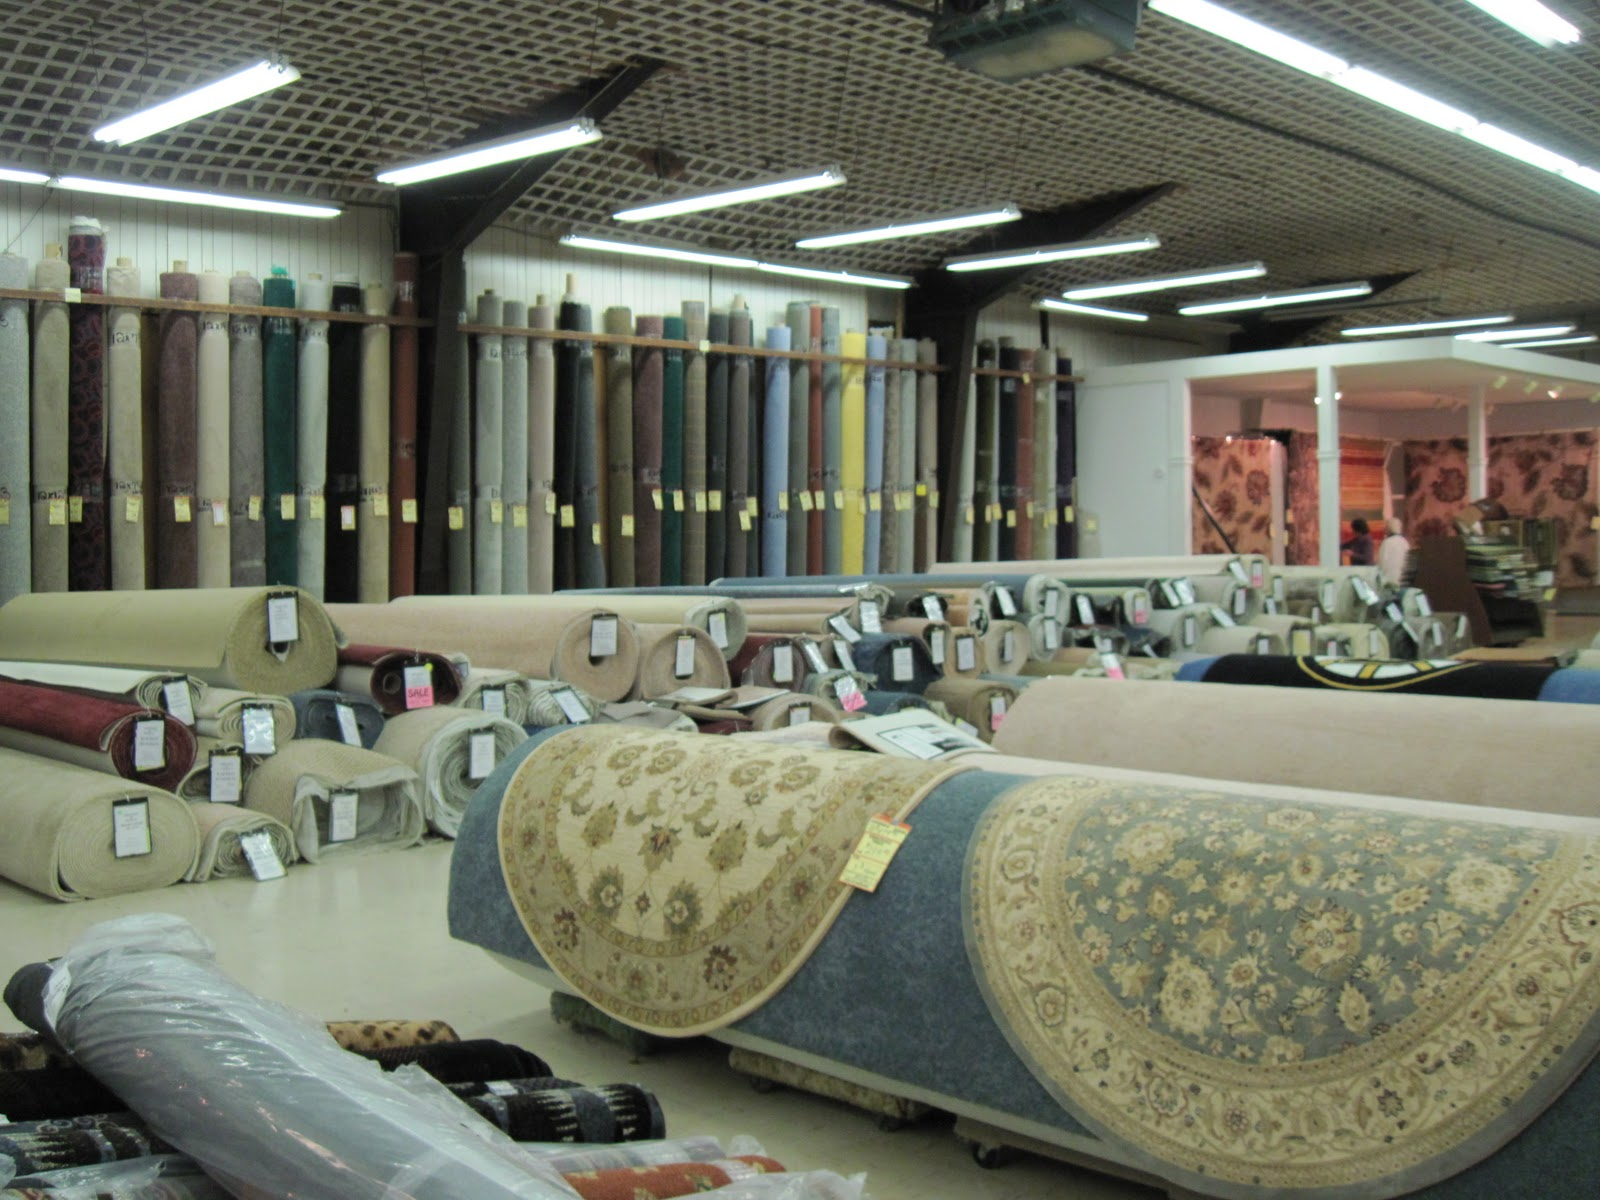 National Carpet   Flooring   Tyngsboro MA  Lowell  Nashua  Merrimack     National Carpet   Flooring   Tyngsboro MA  Lowell  Nashua  Merrimack NH  Carpet  Store  Hardwood Flooring  Area Rugs  Laminate Flooring  Vinyl Flooring and